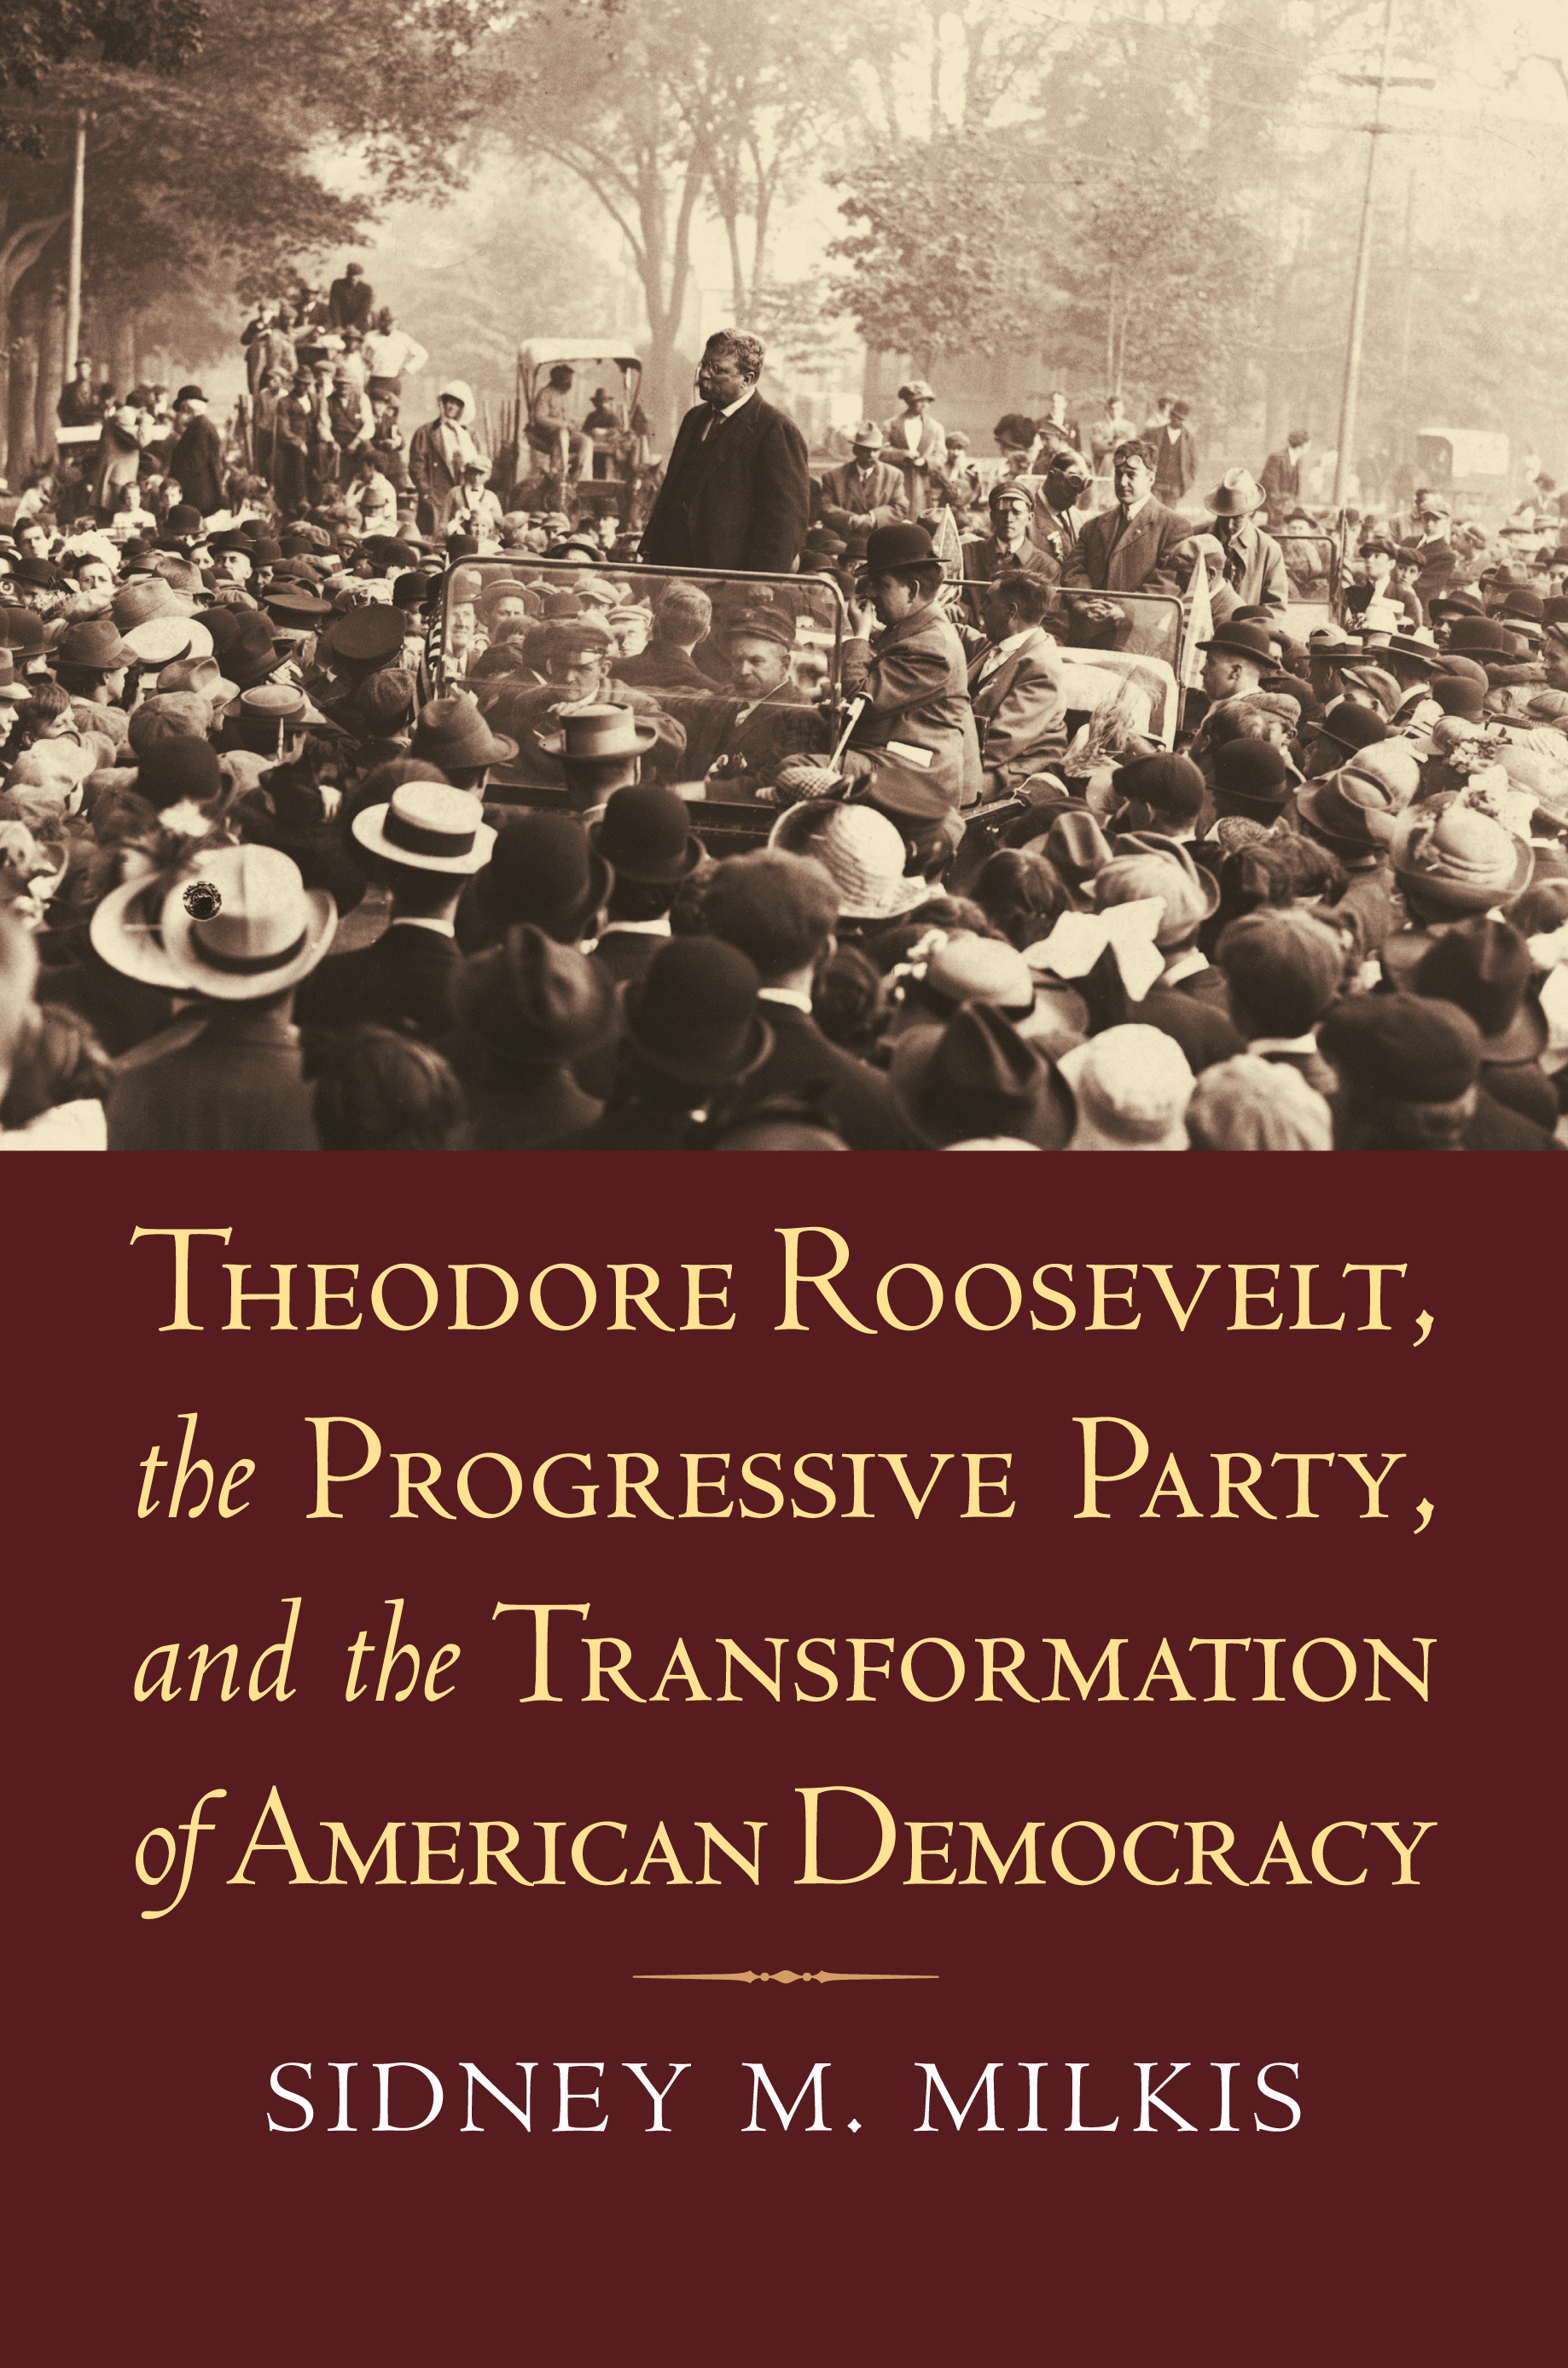 the transformation of american politics in the progressive era Quizlet provides american reform well transformation politics activities, flashcards and games start learning today for free  second campaign era.